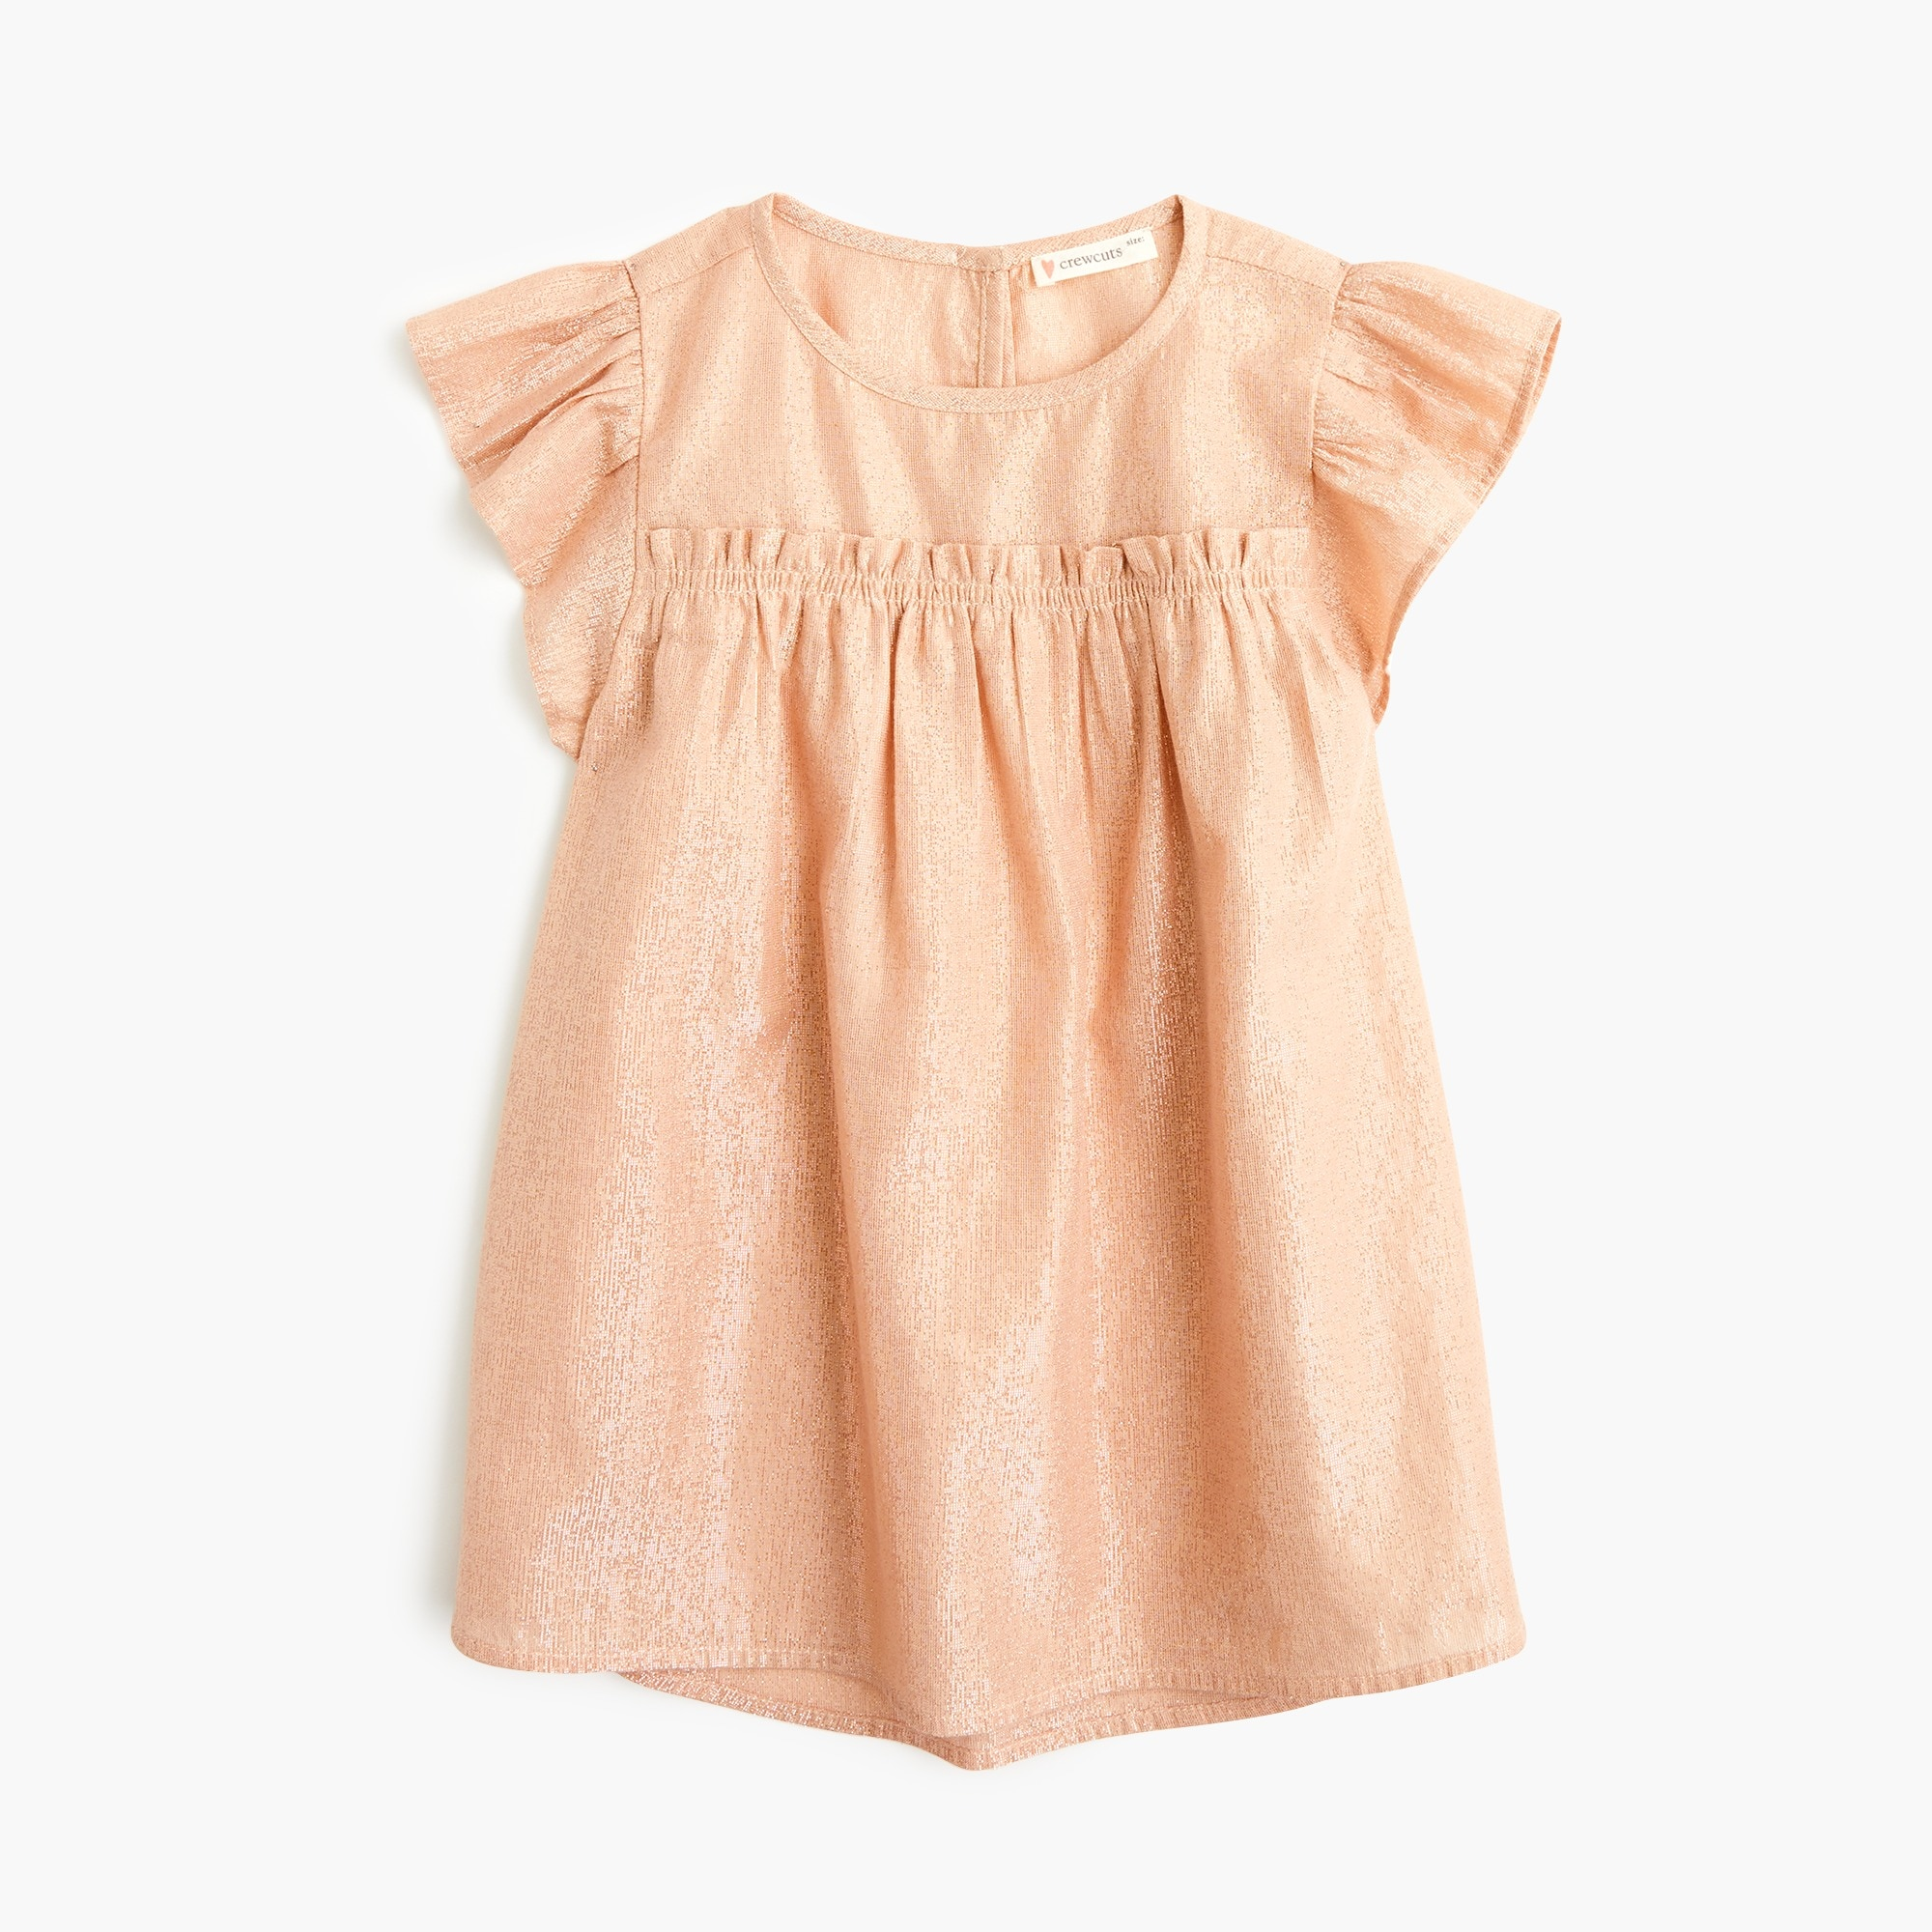 Image 3 for Girls' ruffle-trimmed top in lamé